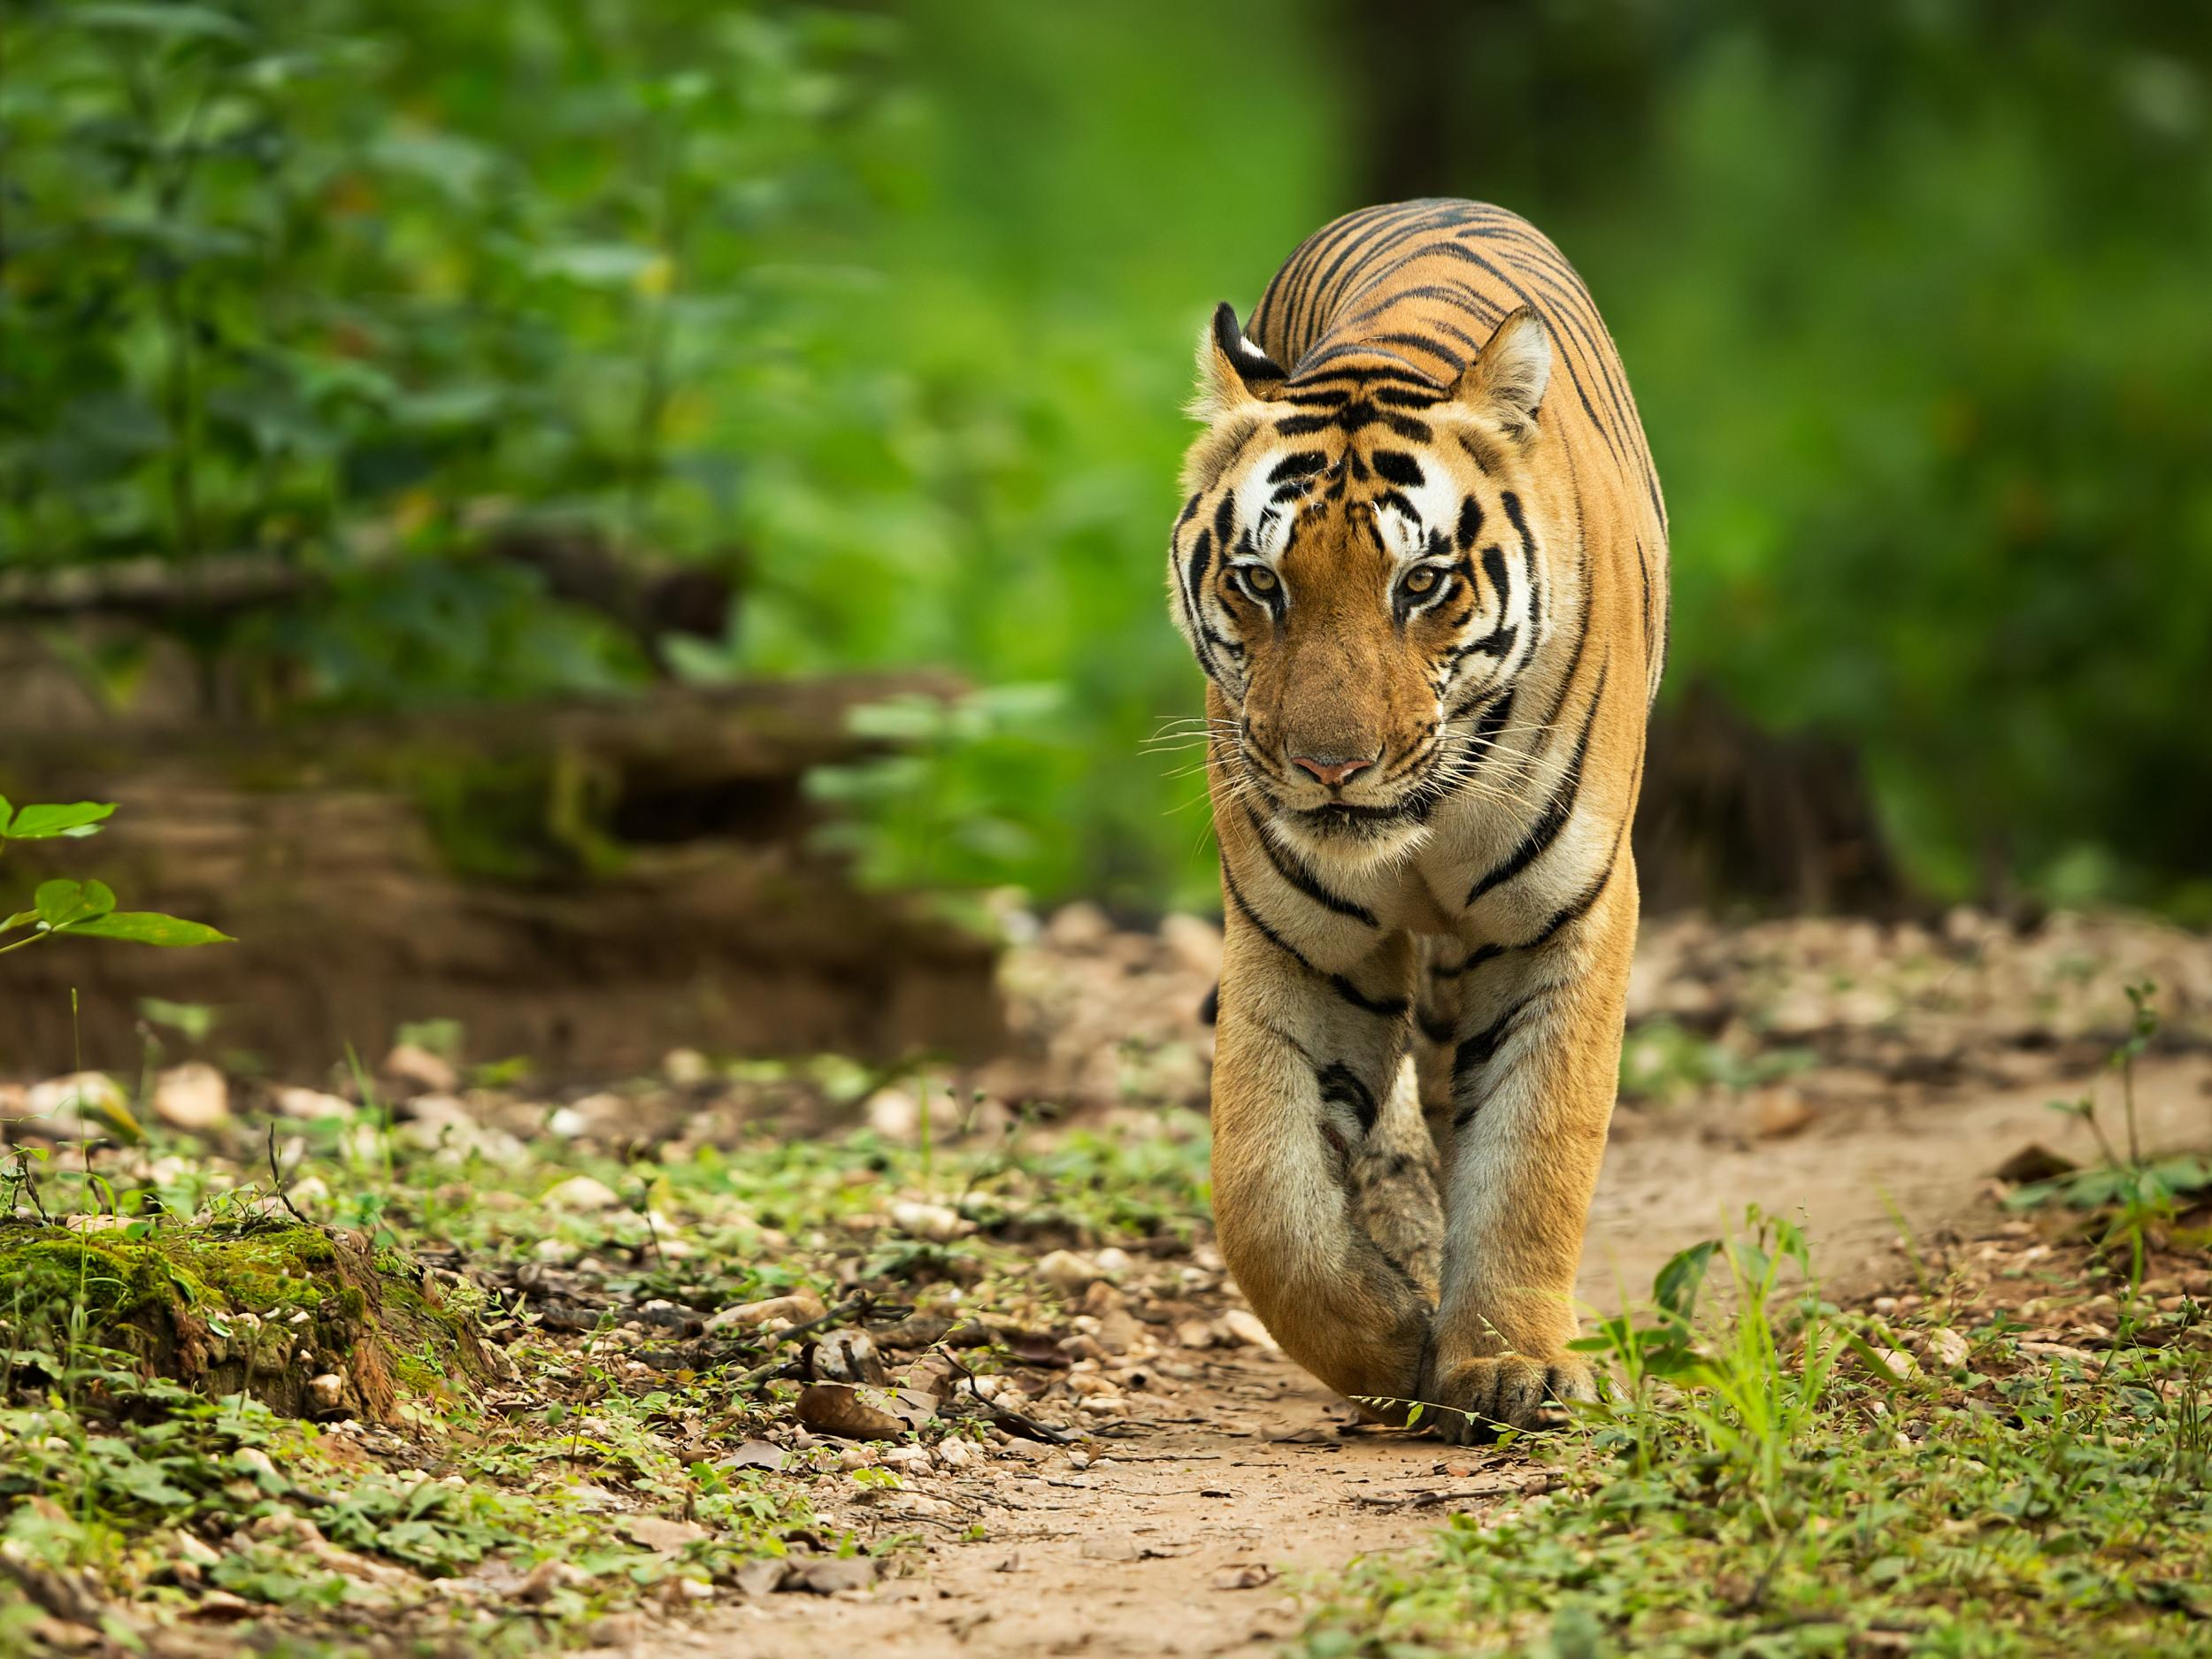 Man-eating tiger hunted by Indian authorities using Calvin Klein